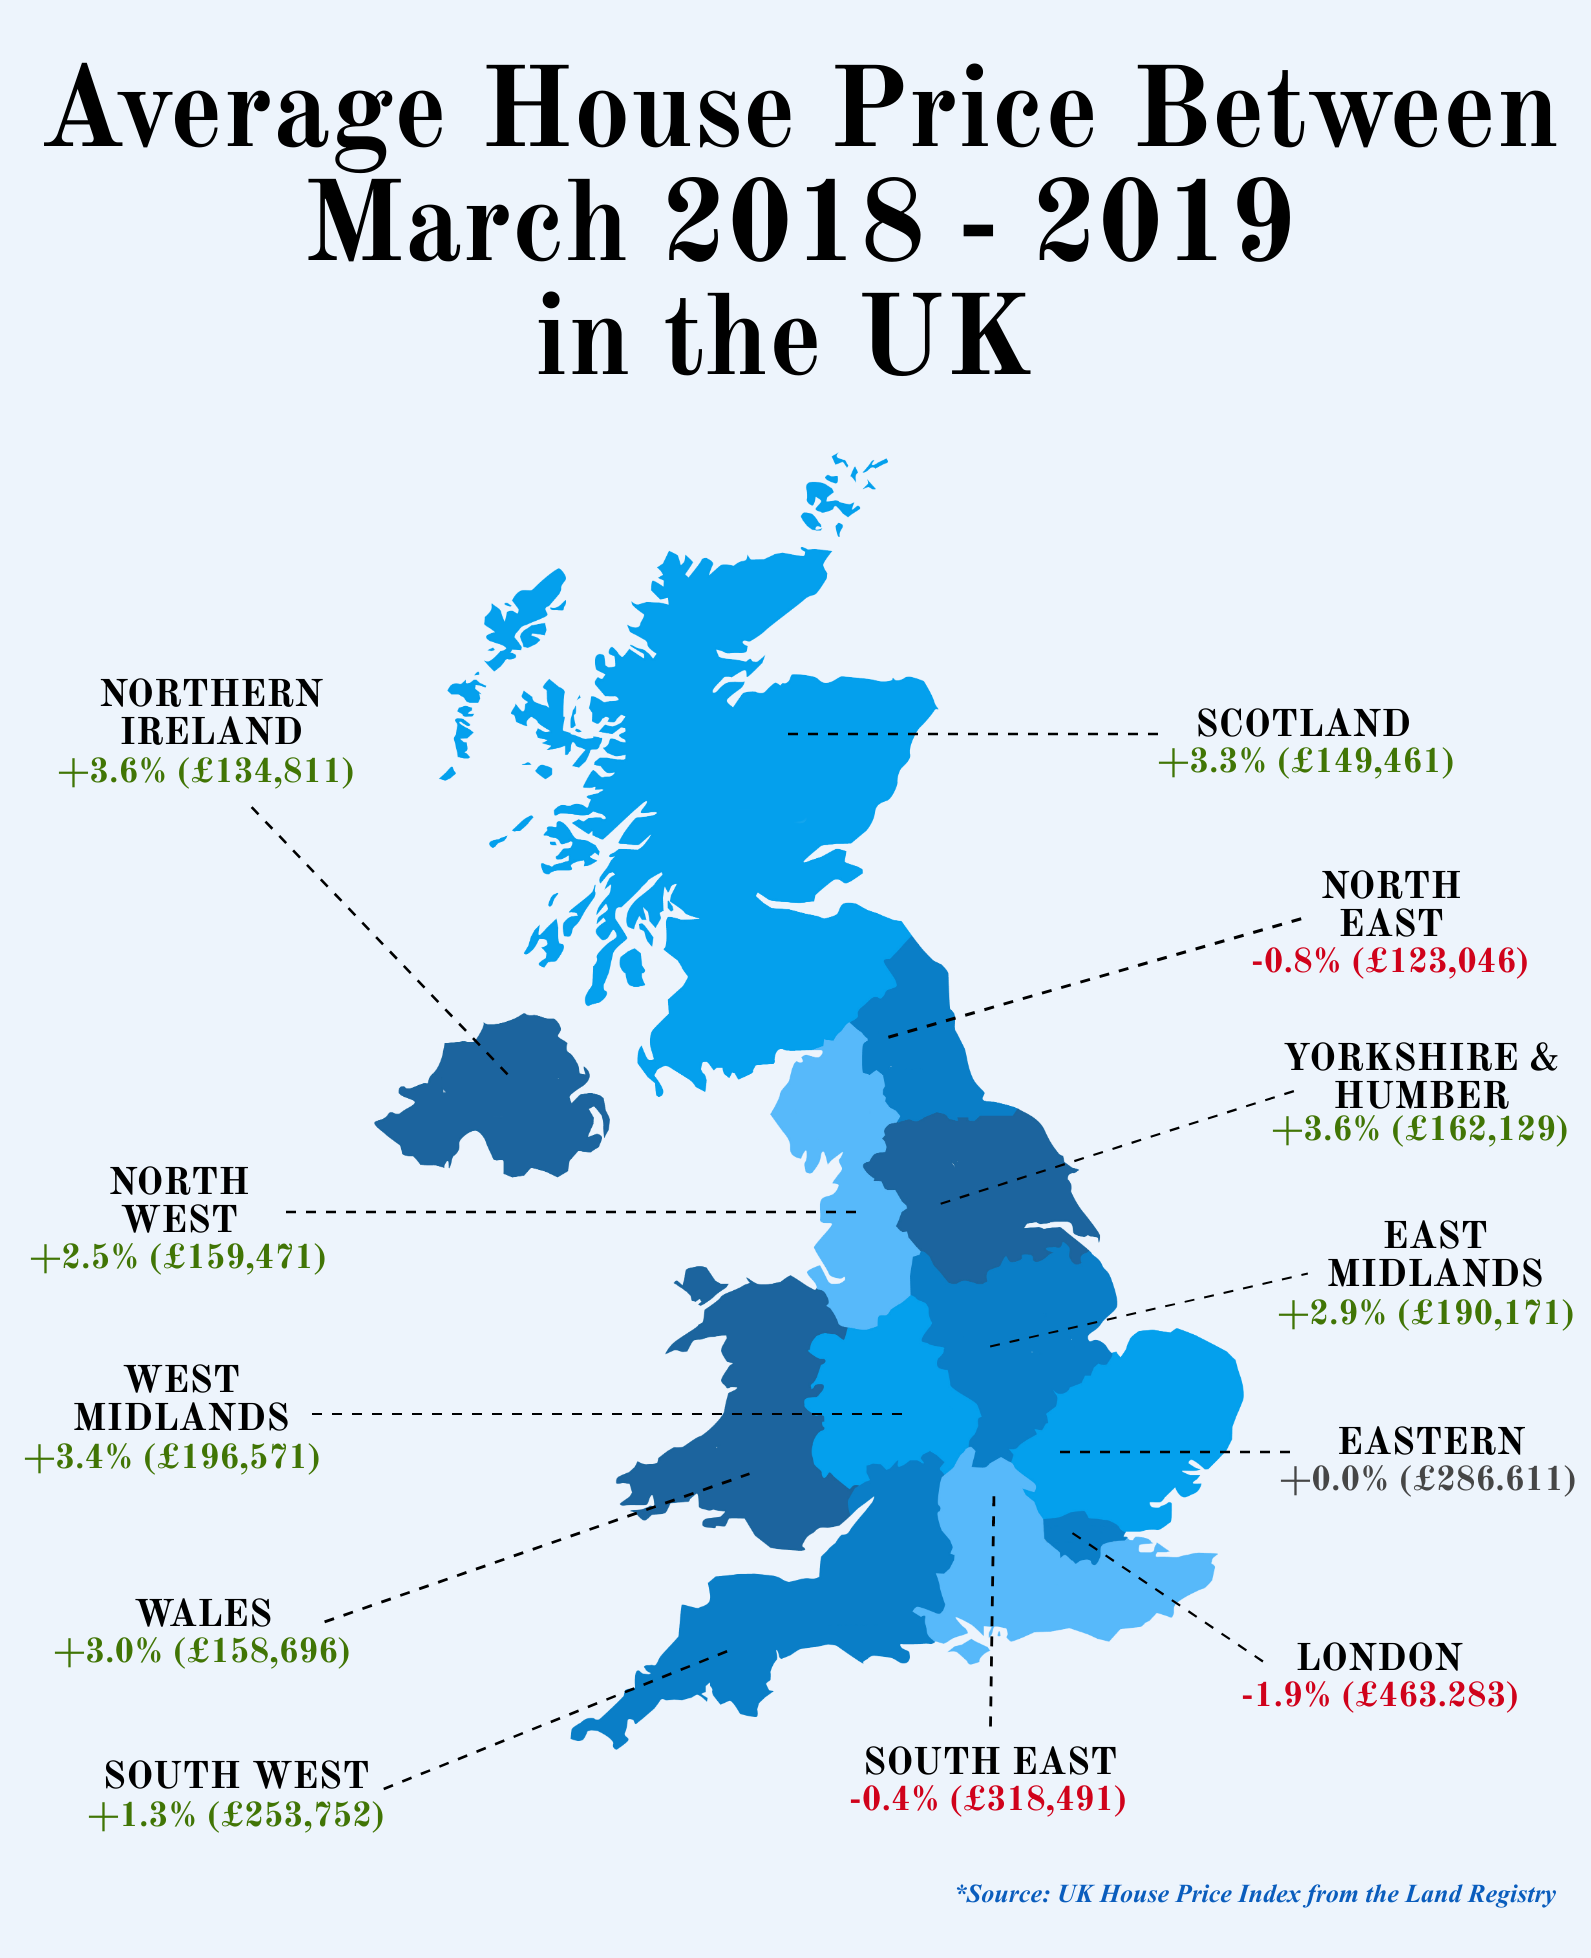 Average House Price Between March 2018-2019 in the UK